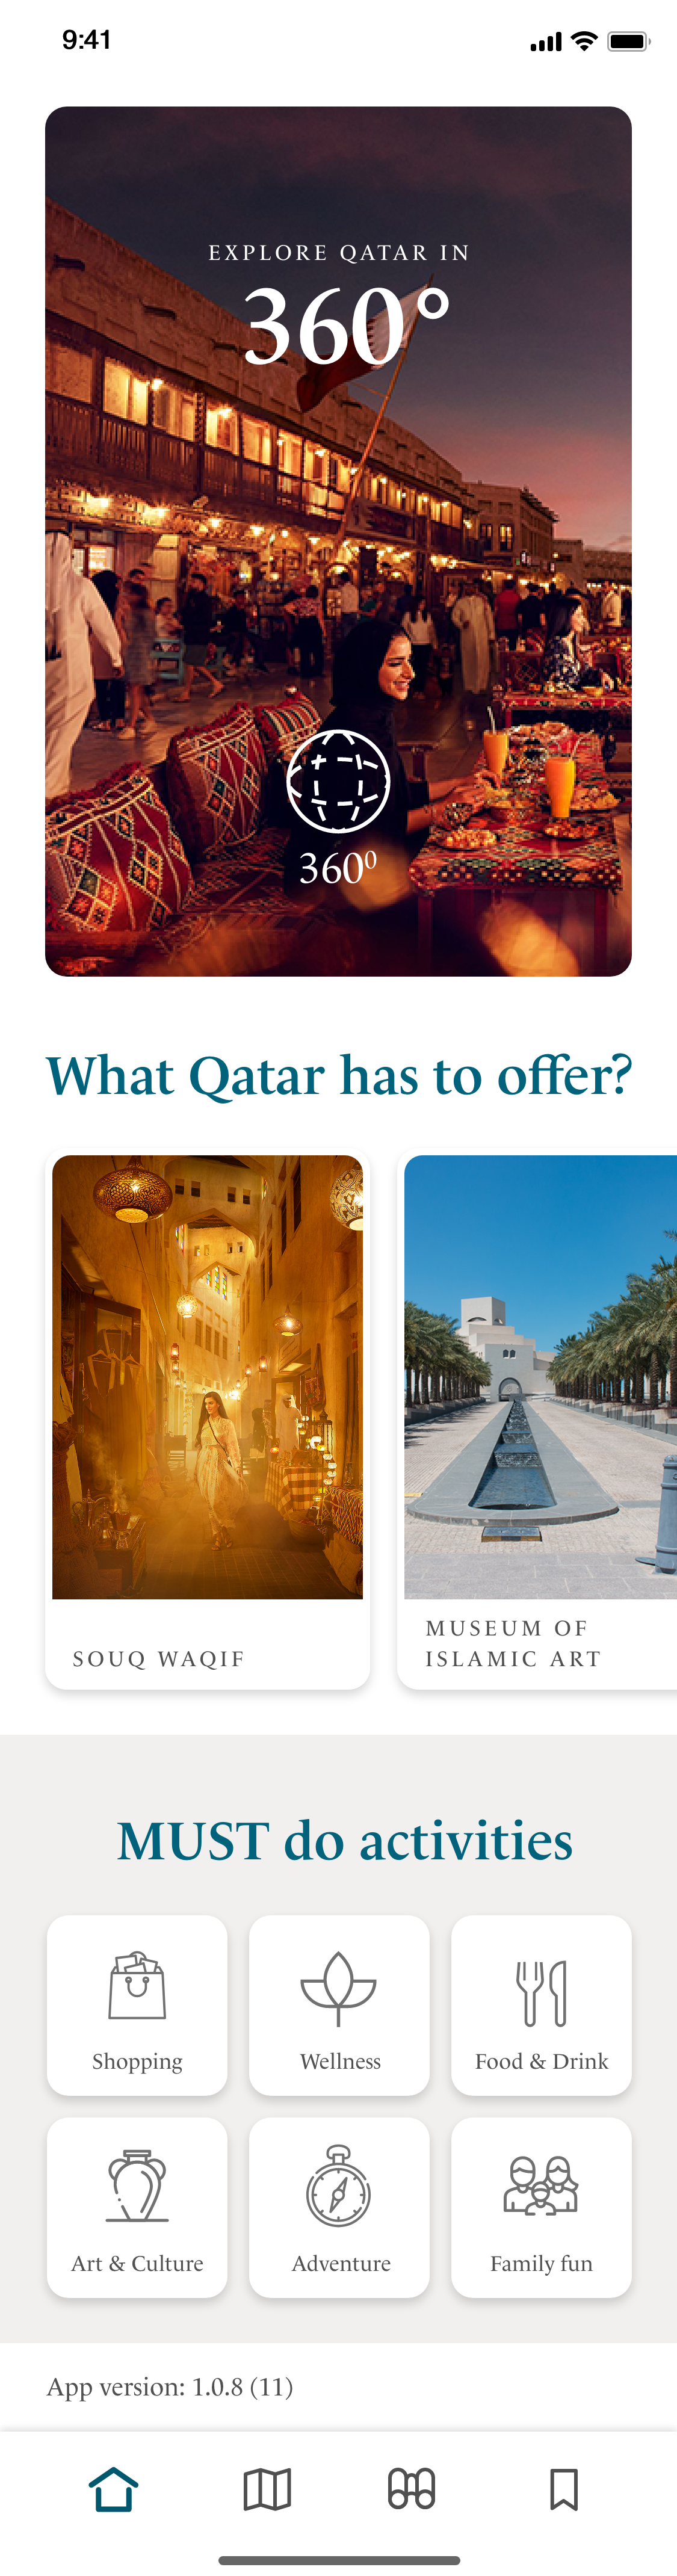 Qatar National Tourism Council launches mobile app offering personalised experience